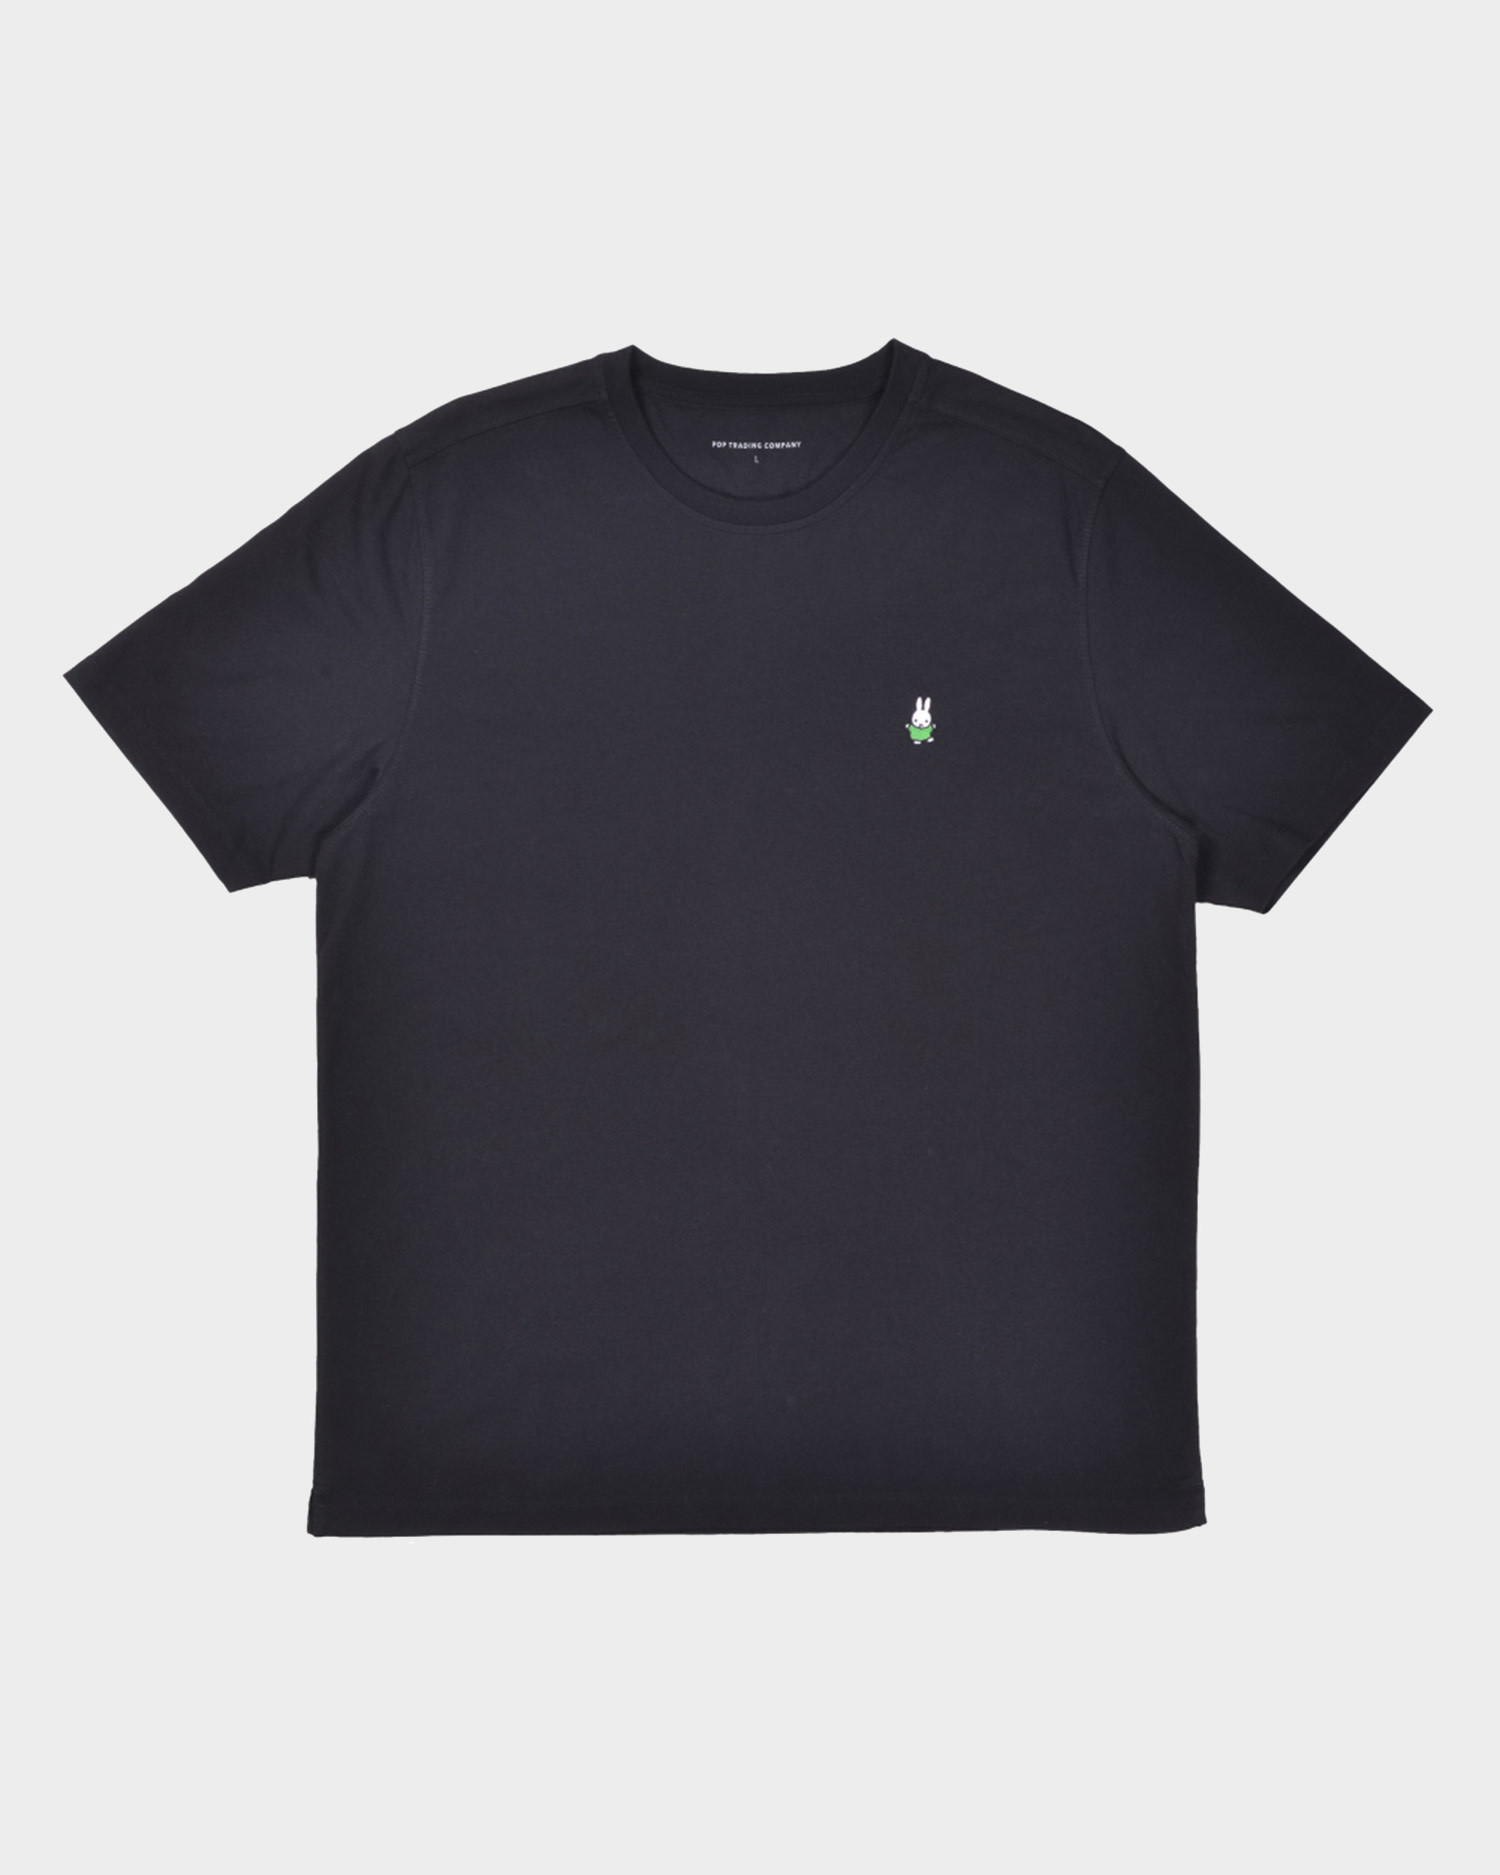 Pop Trading Co X Miffy Dancing Embroidery T-Shirt Black